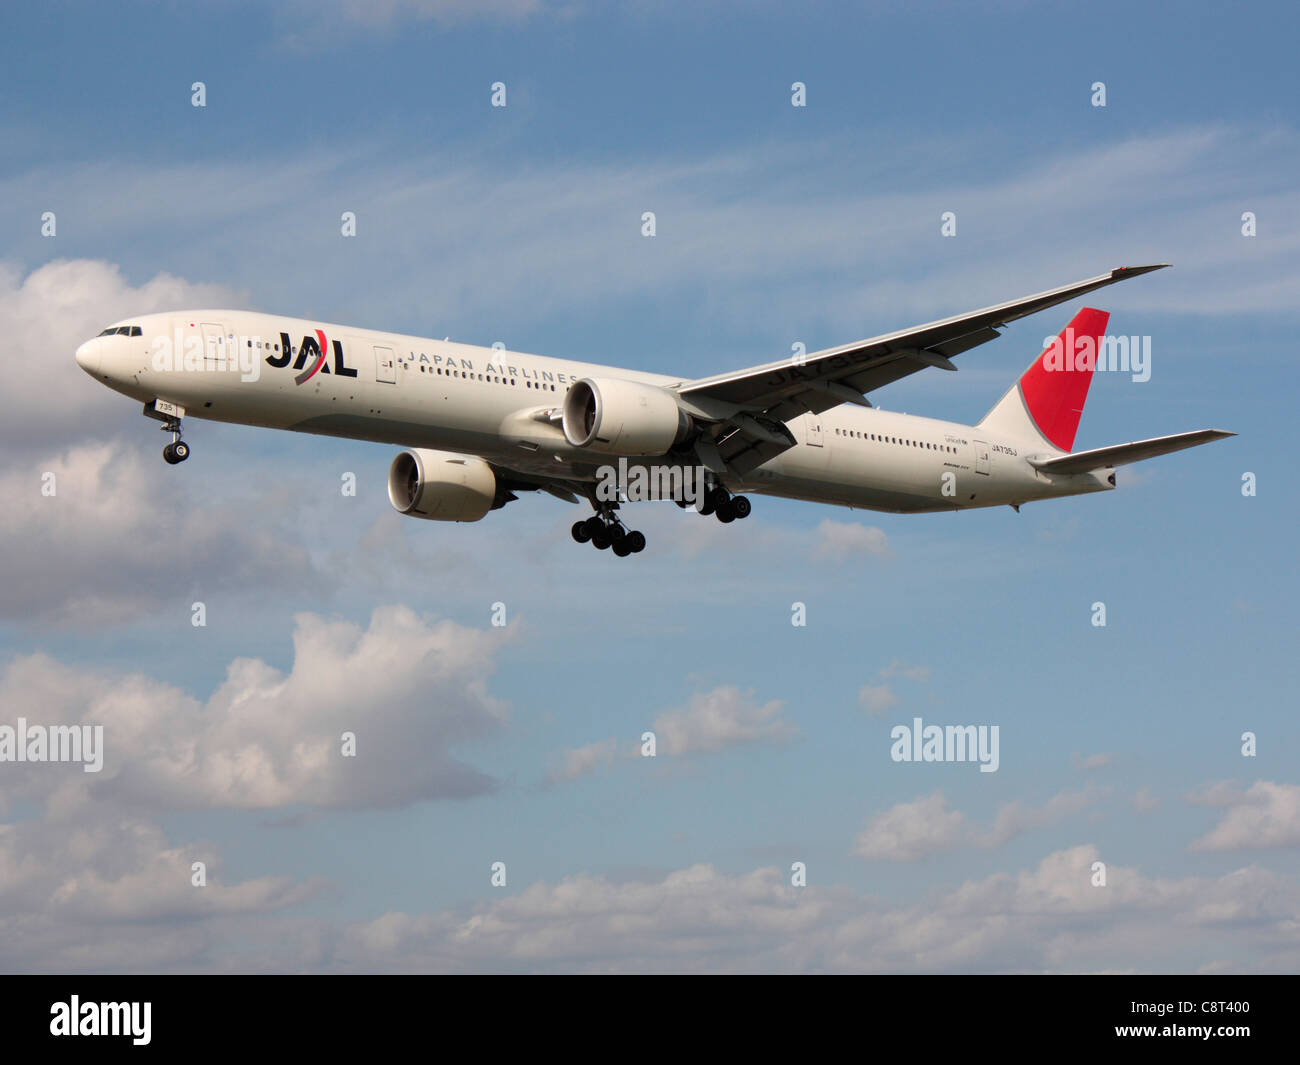 JAL Japan Airlines Boeing 777-300ER long haul airliner on approach - Stock Image